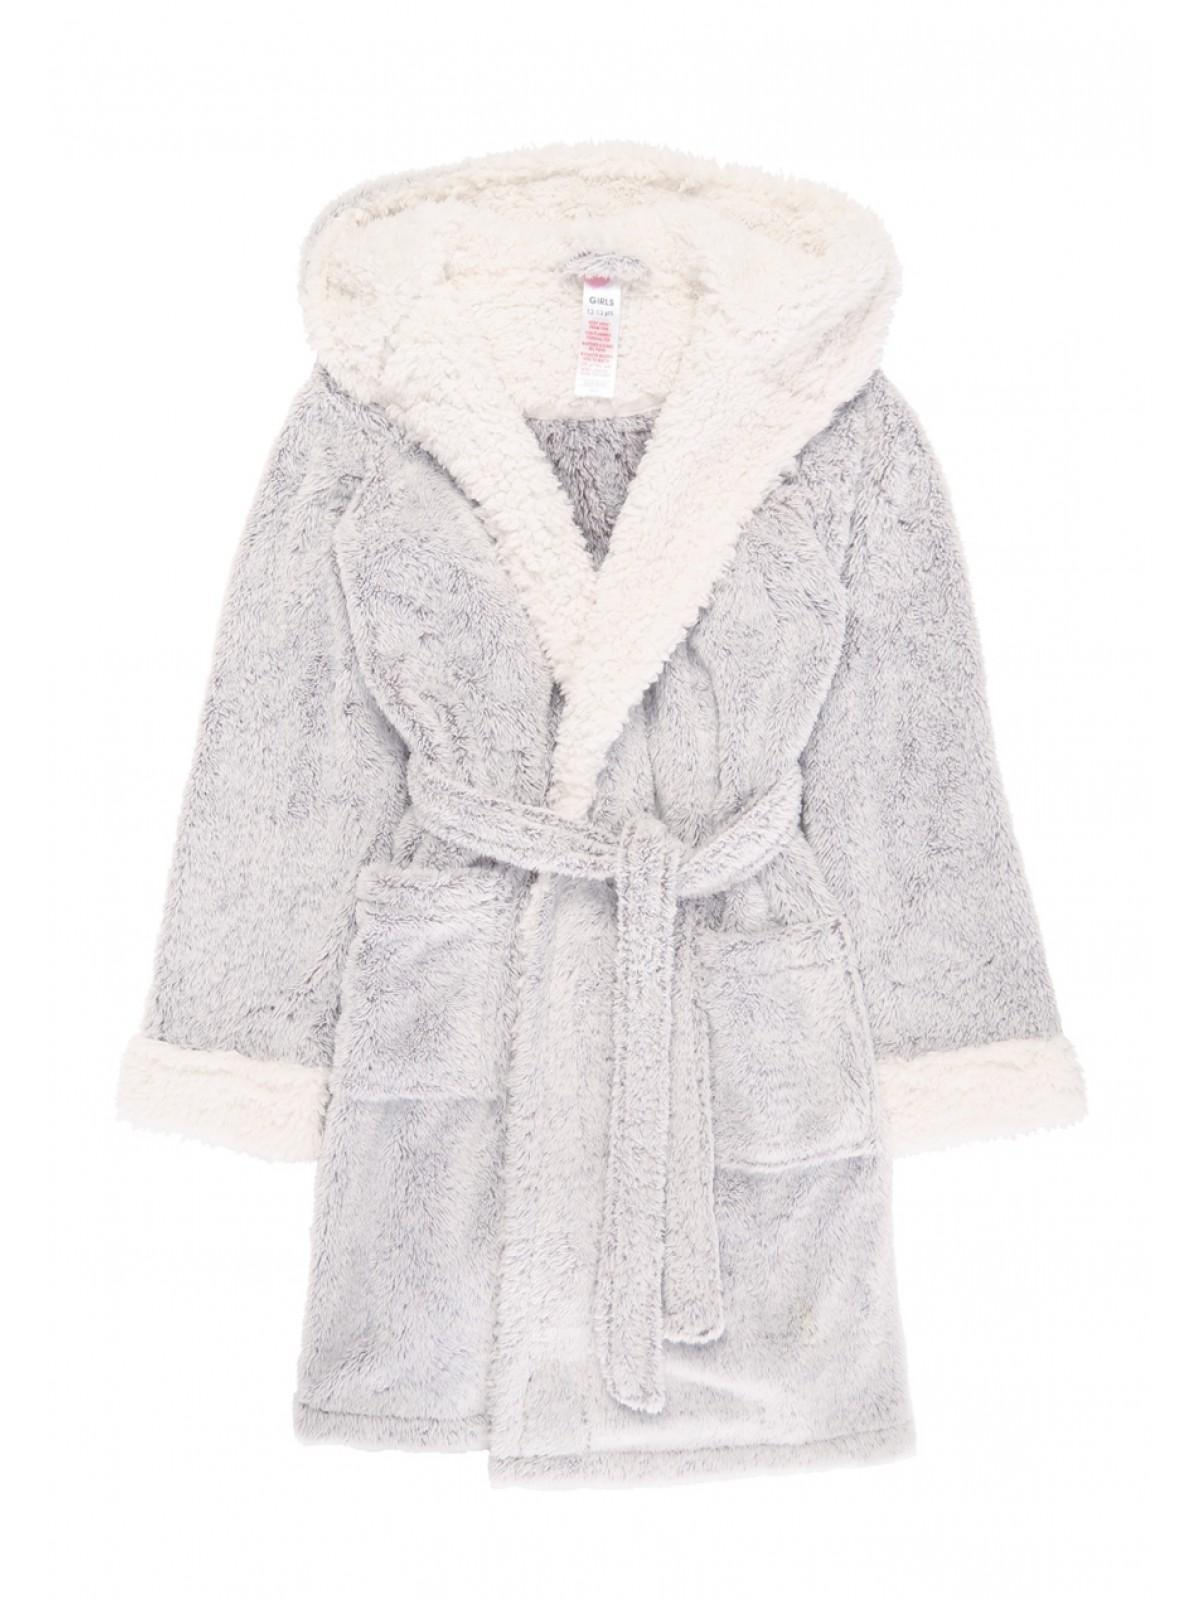 Girls Grey Sherpa Dressing Gown | Peacocks